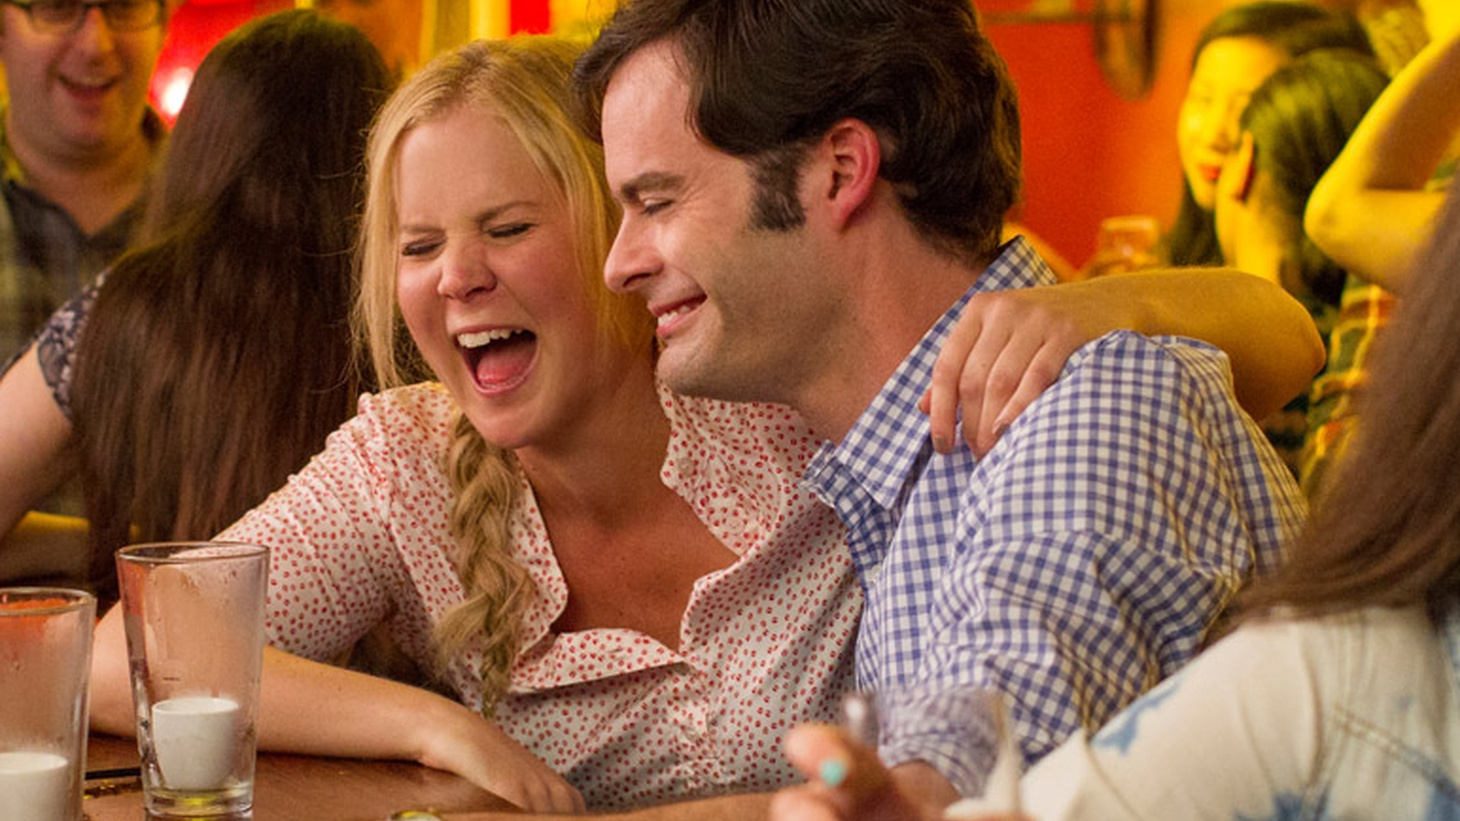 American comedy doesn't get much better than Trainwreck at its best. Amy Schumer is a fearless artist without borders.